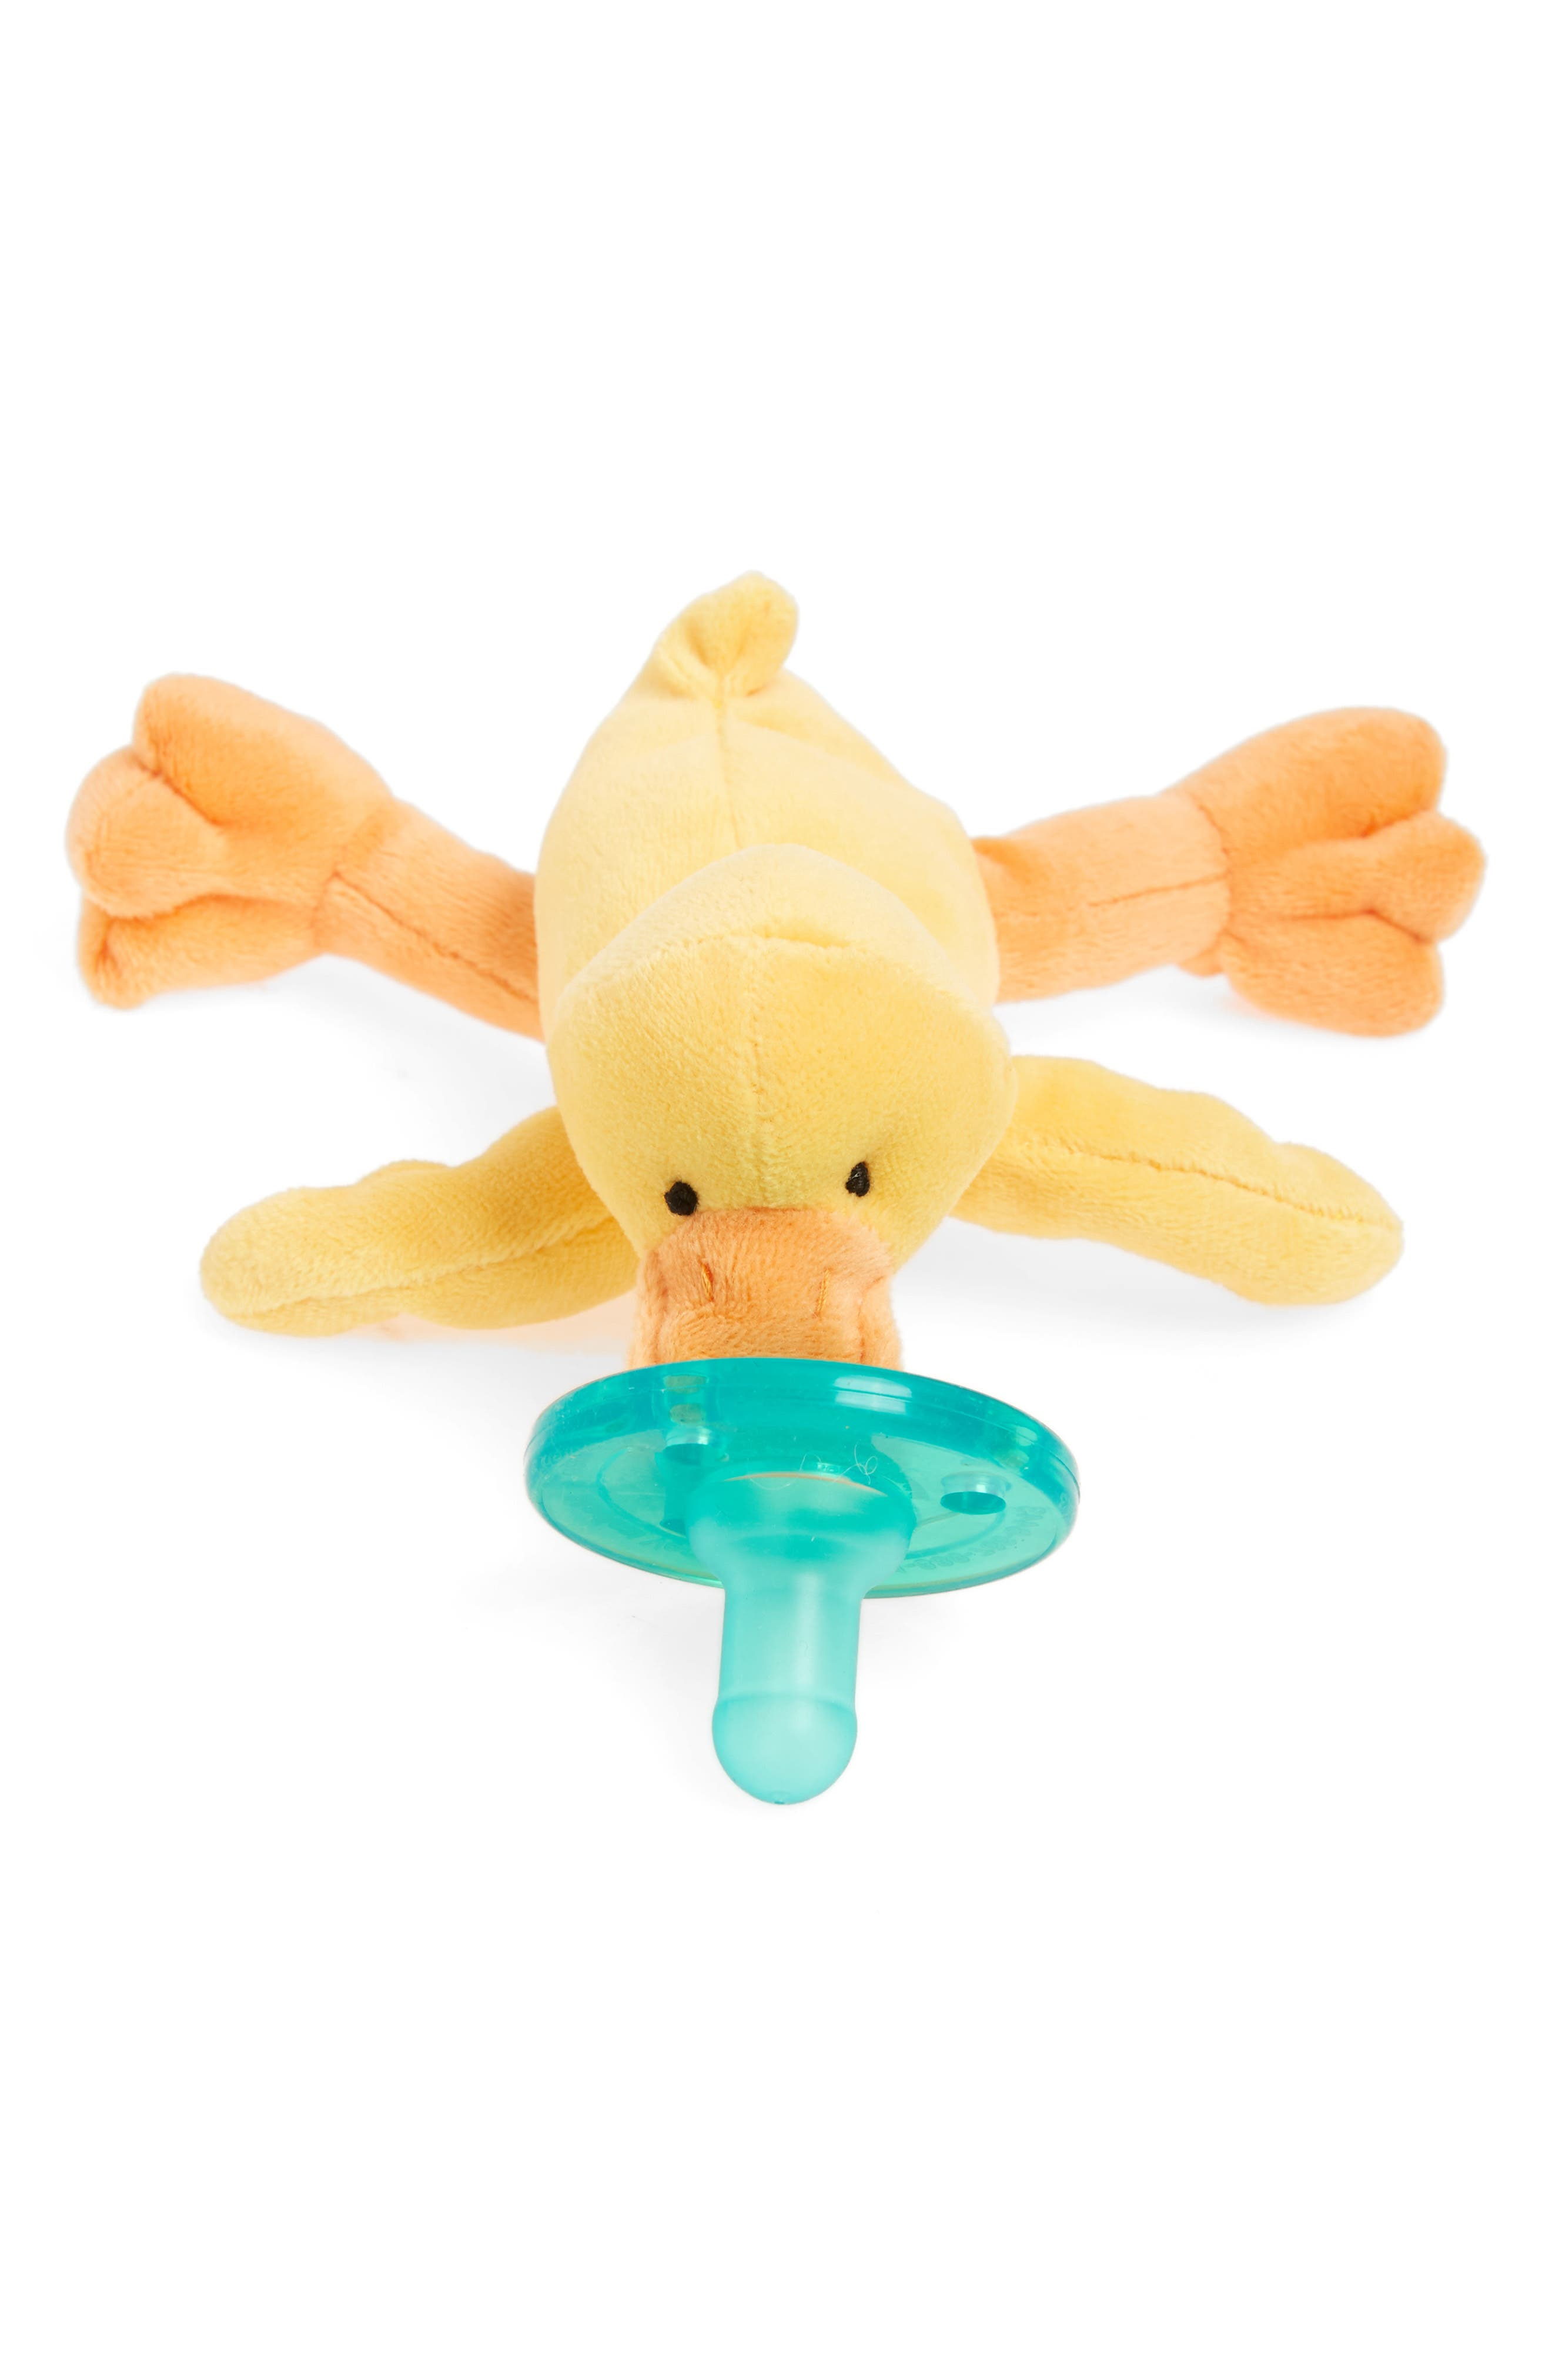 Baby Yellow Duck Pacifier Toy,                             Main thumbnail 1, color,                             700